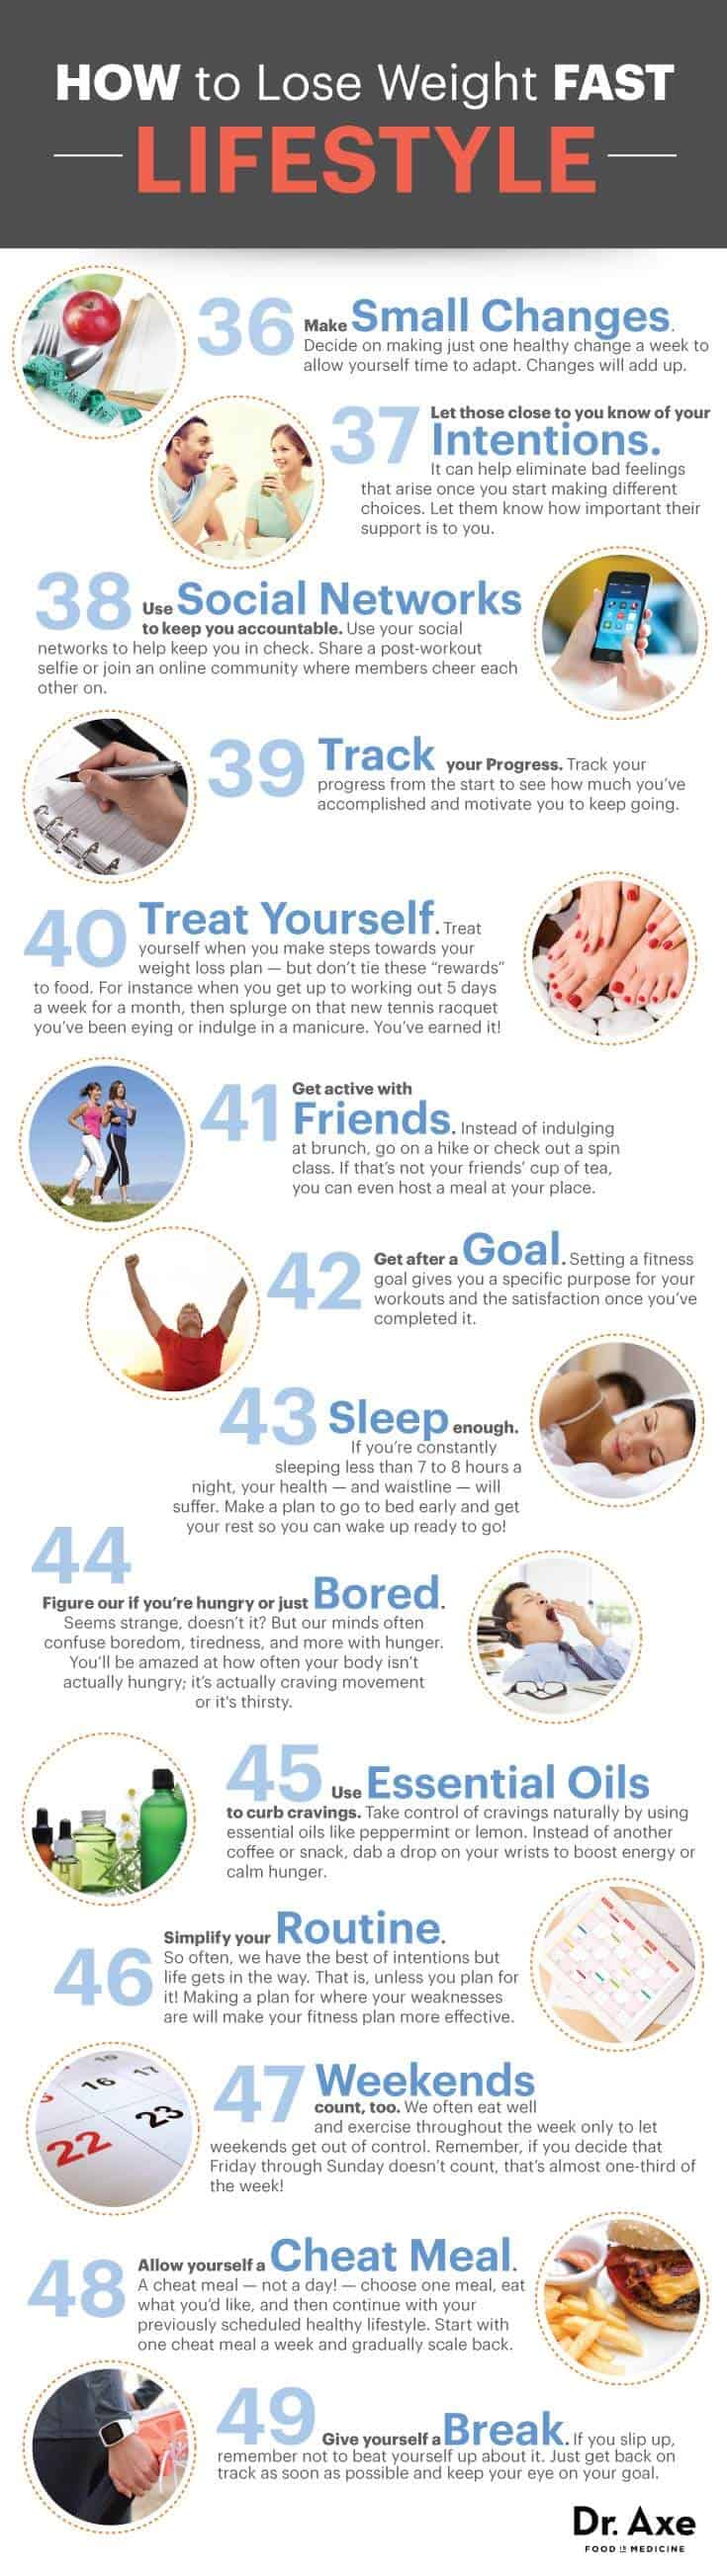 Lifestyle secrets to lose weight - Dr. Axe